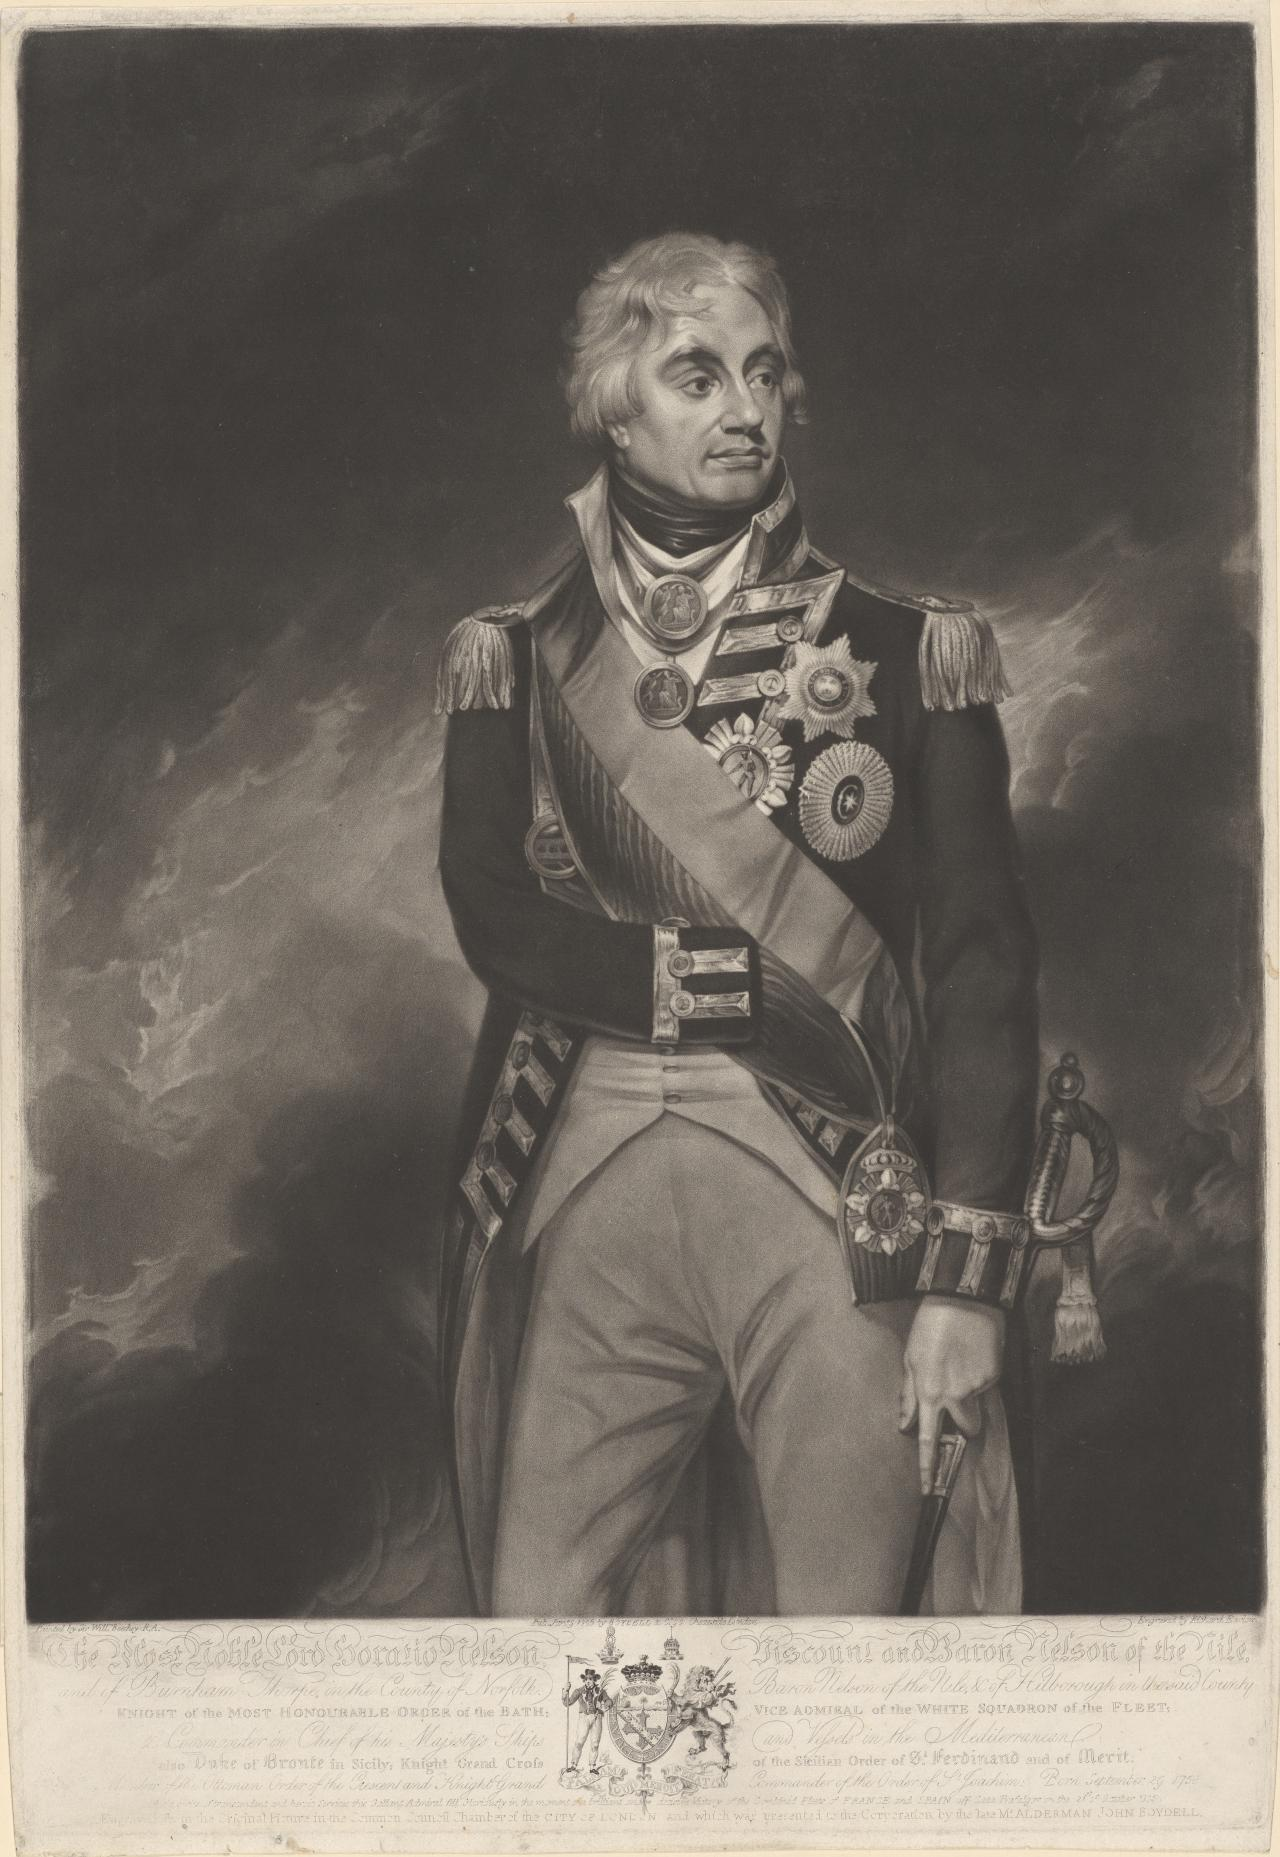 The Most nobel Lord Horatio Nelson, Viscount and Baron of the Nile